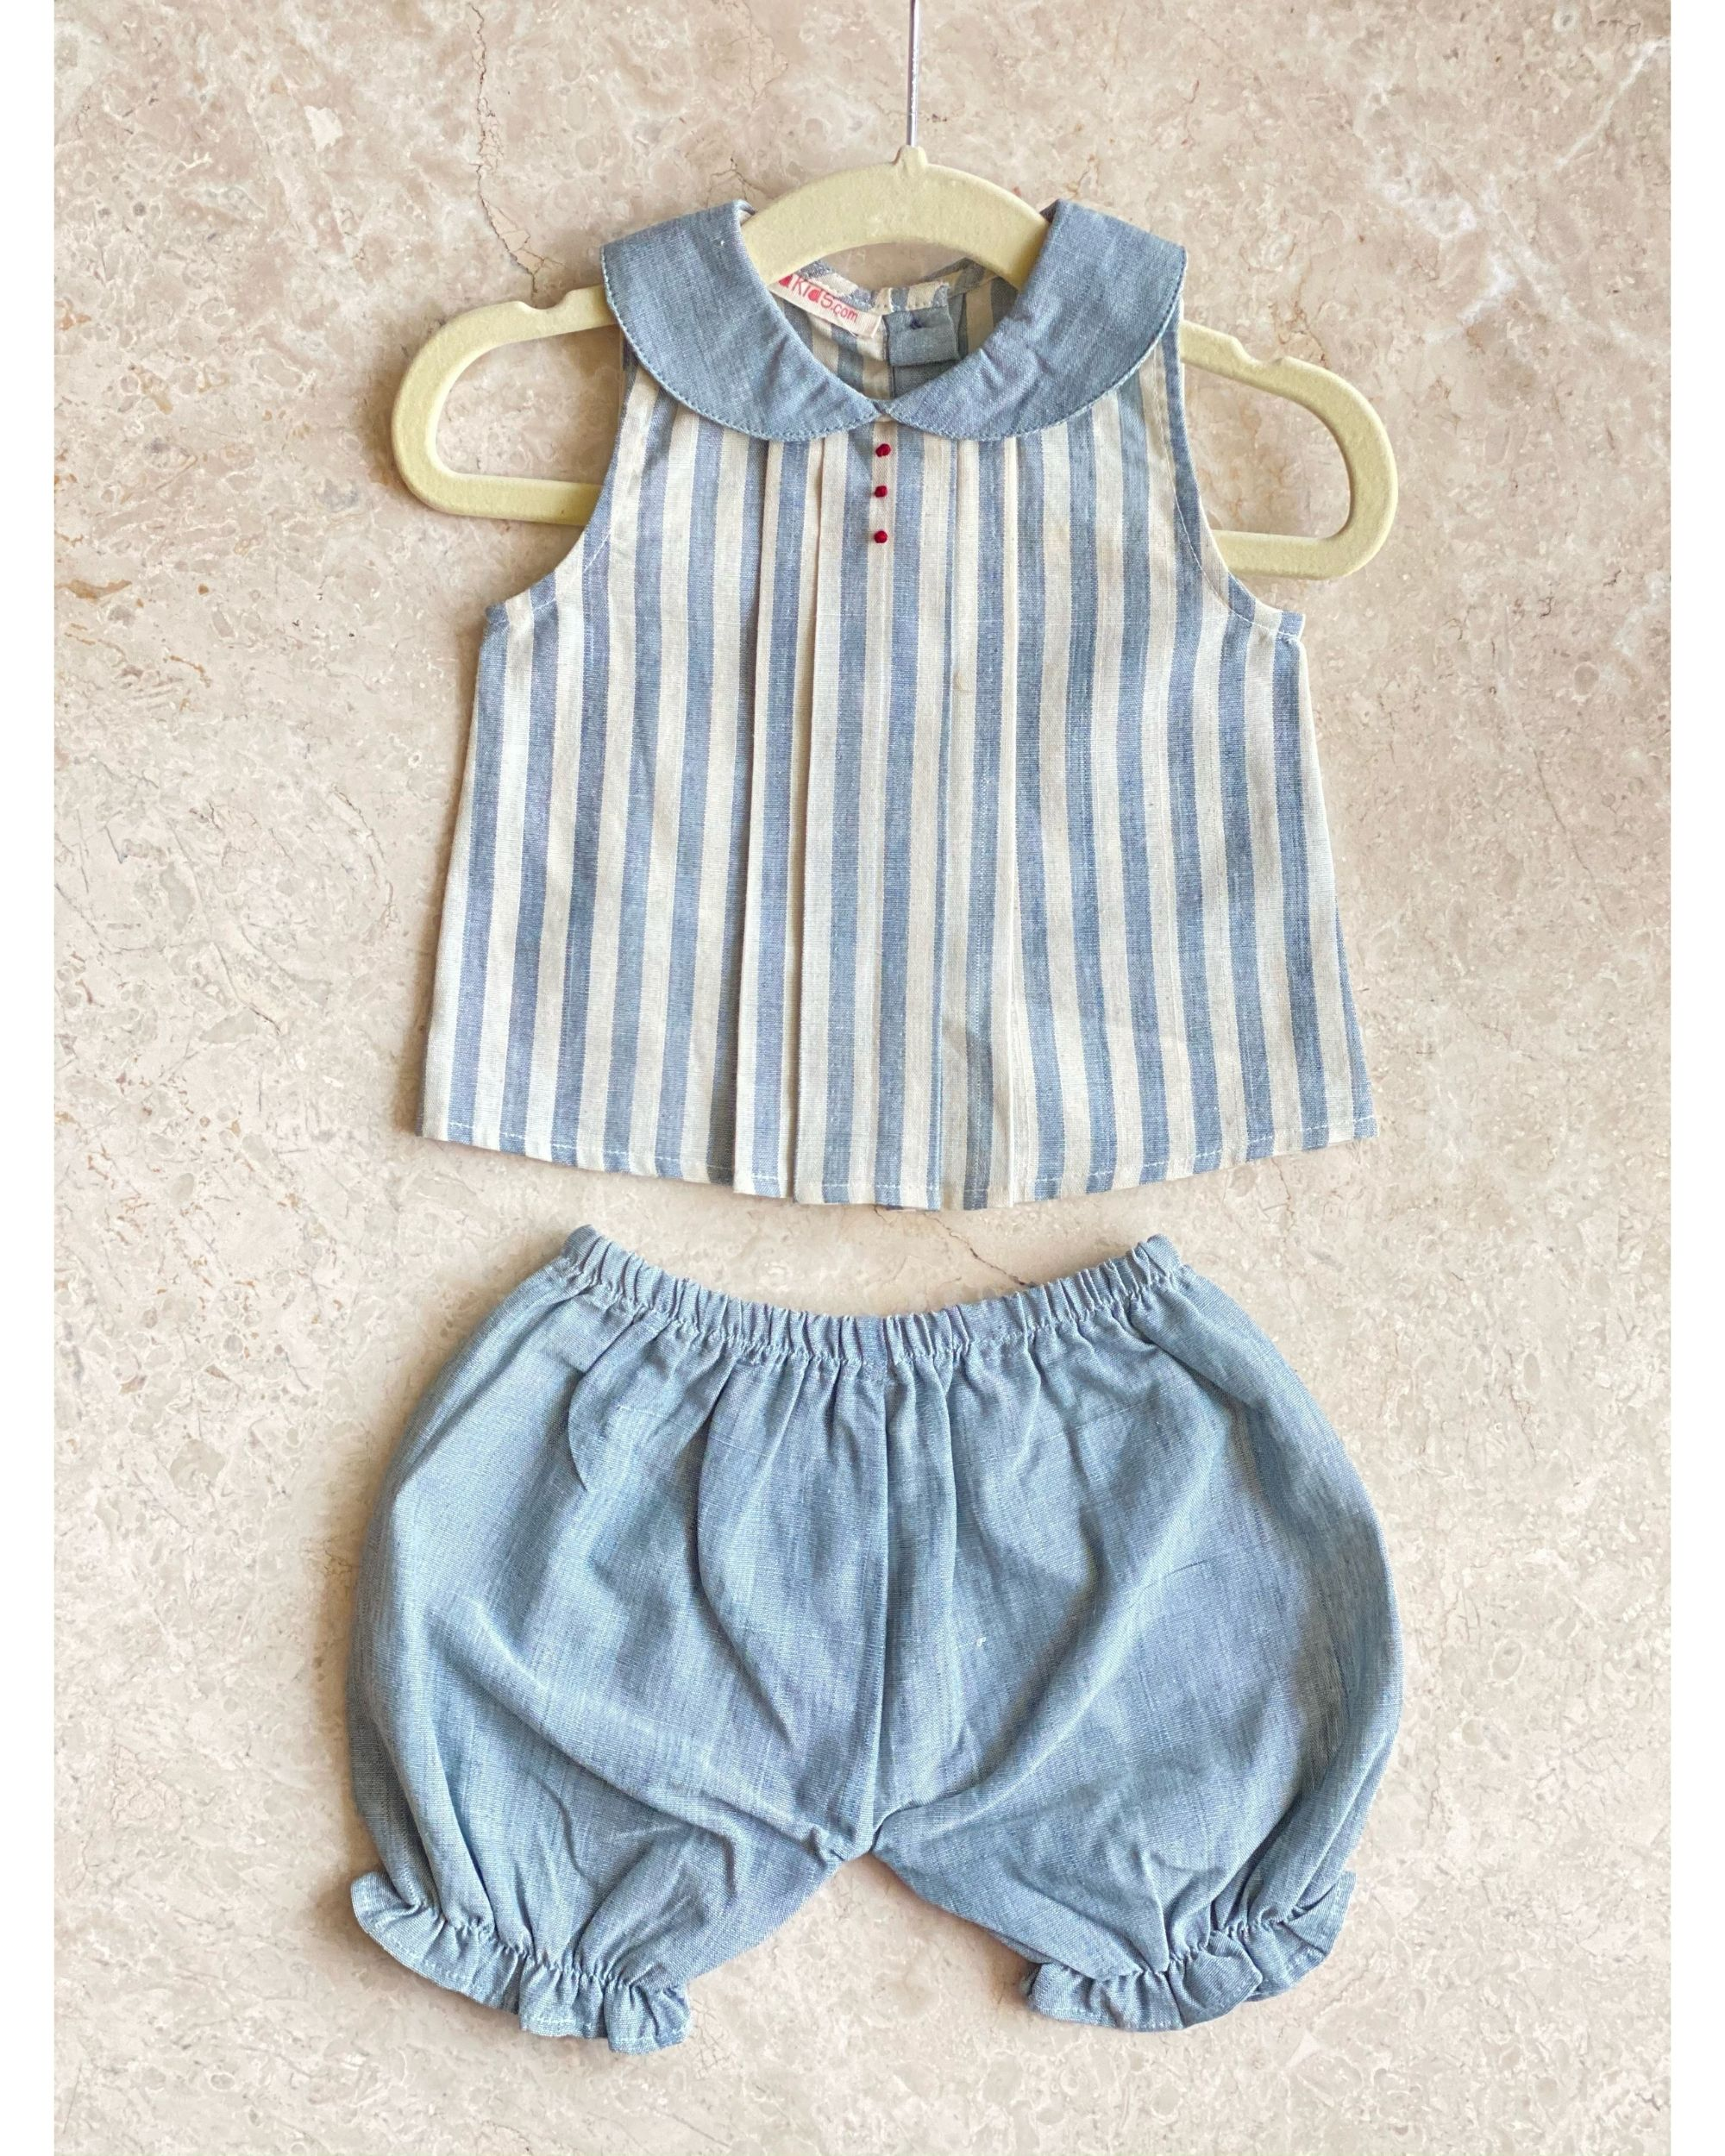 Off  white and blue striped top with knickers - set of two